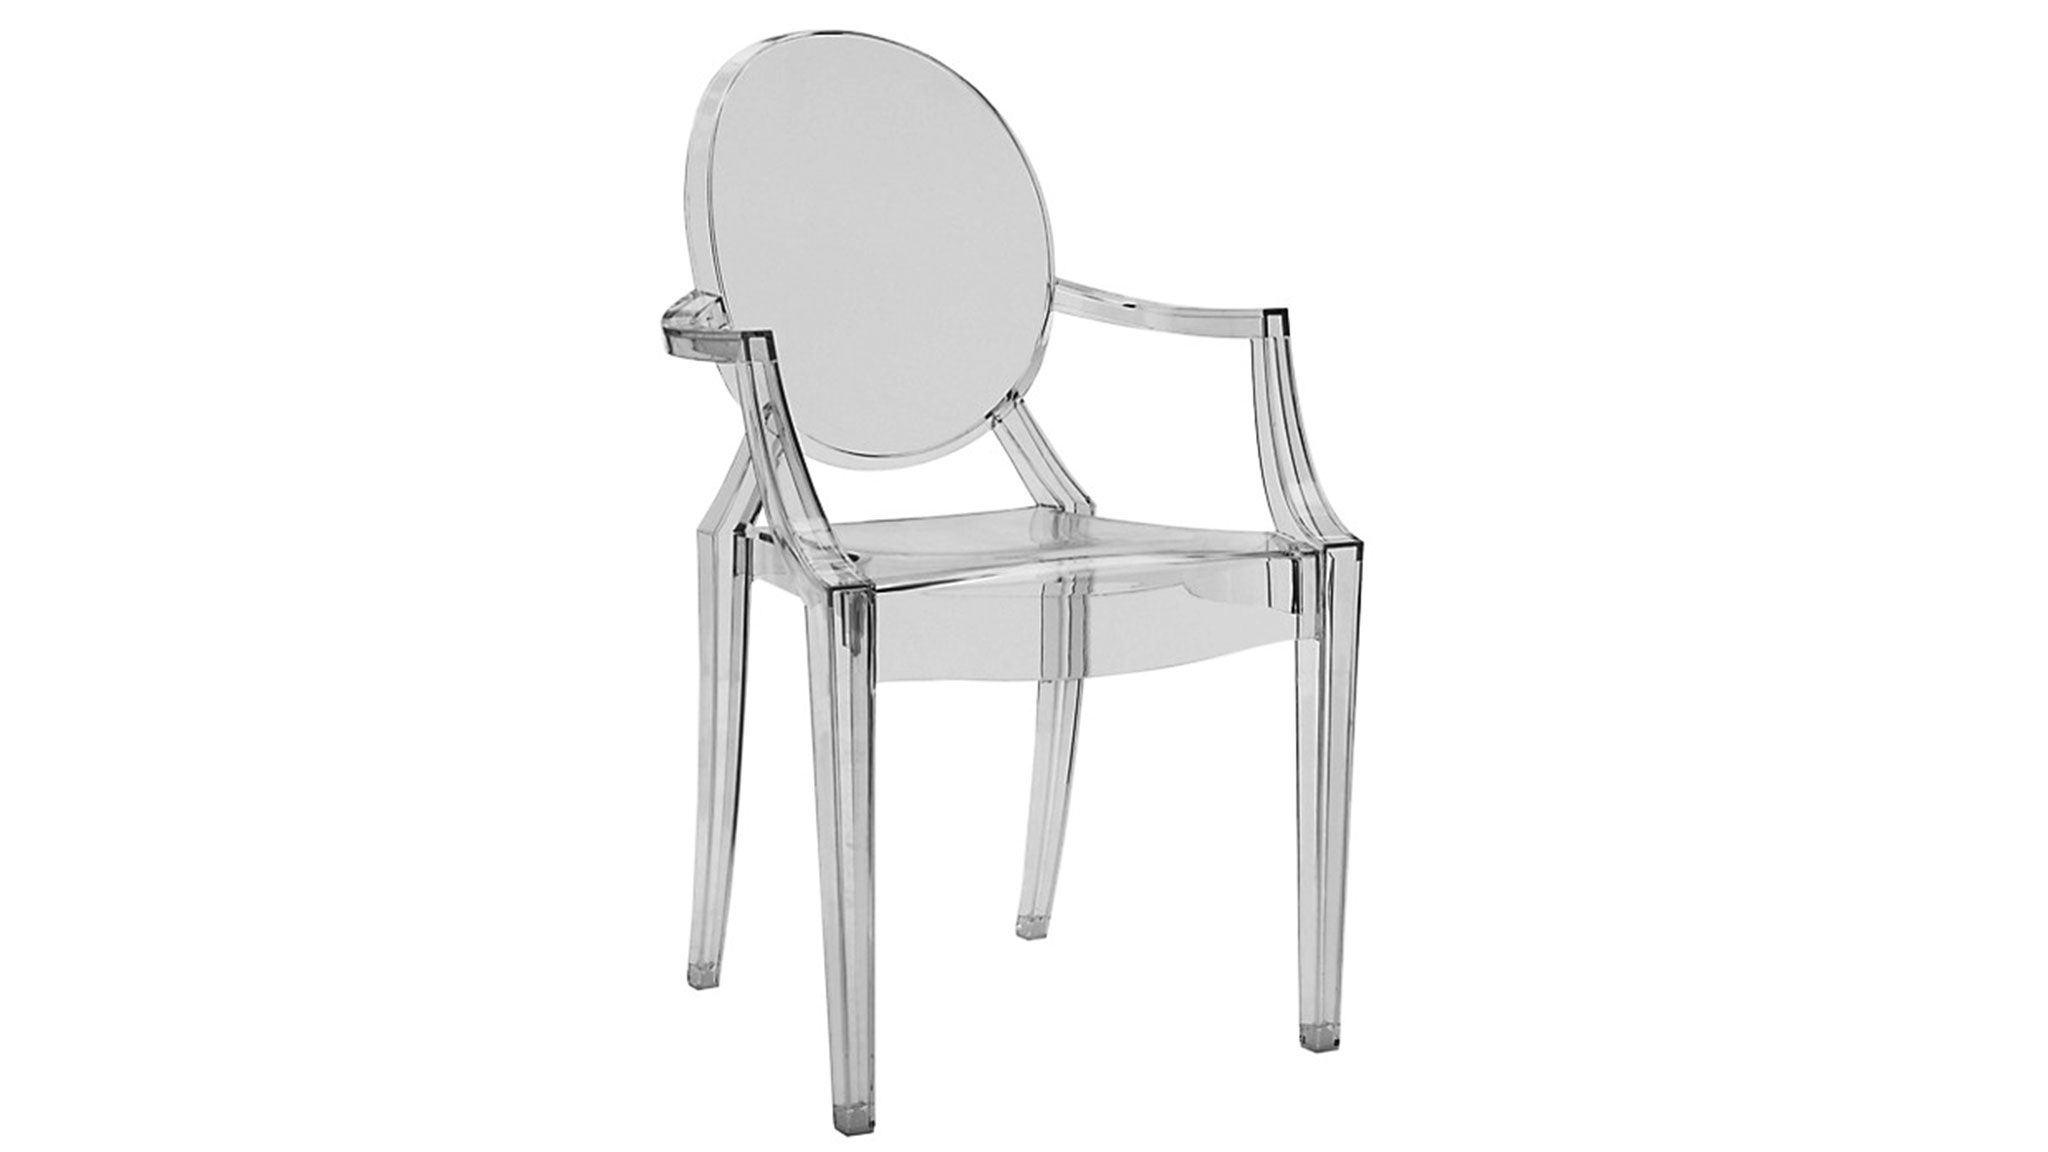 Design classic the Louis Ghost chair by Philippe Starck